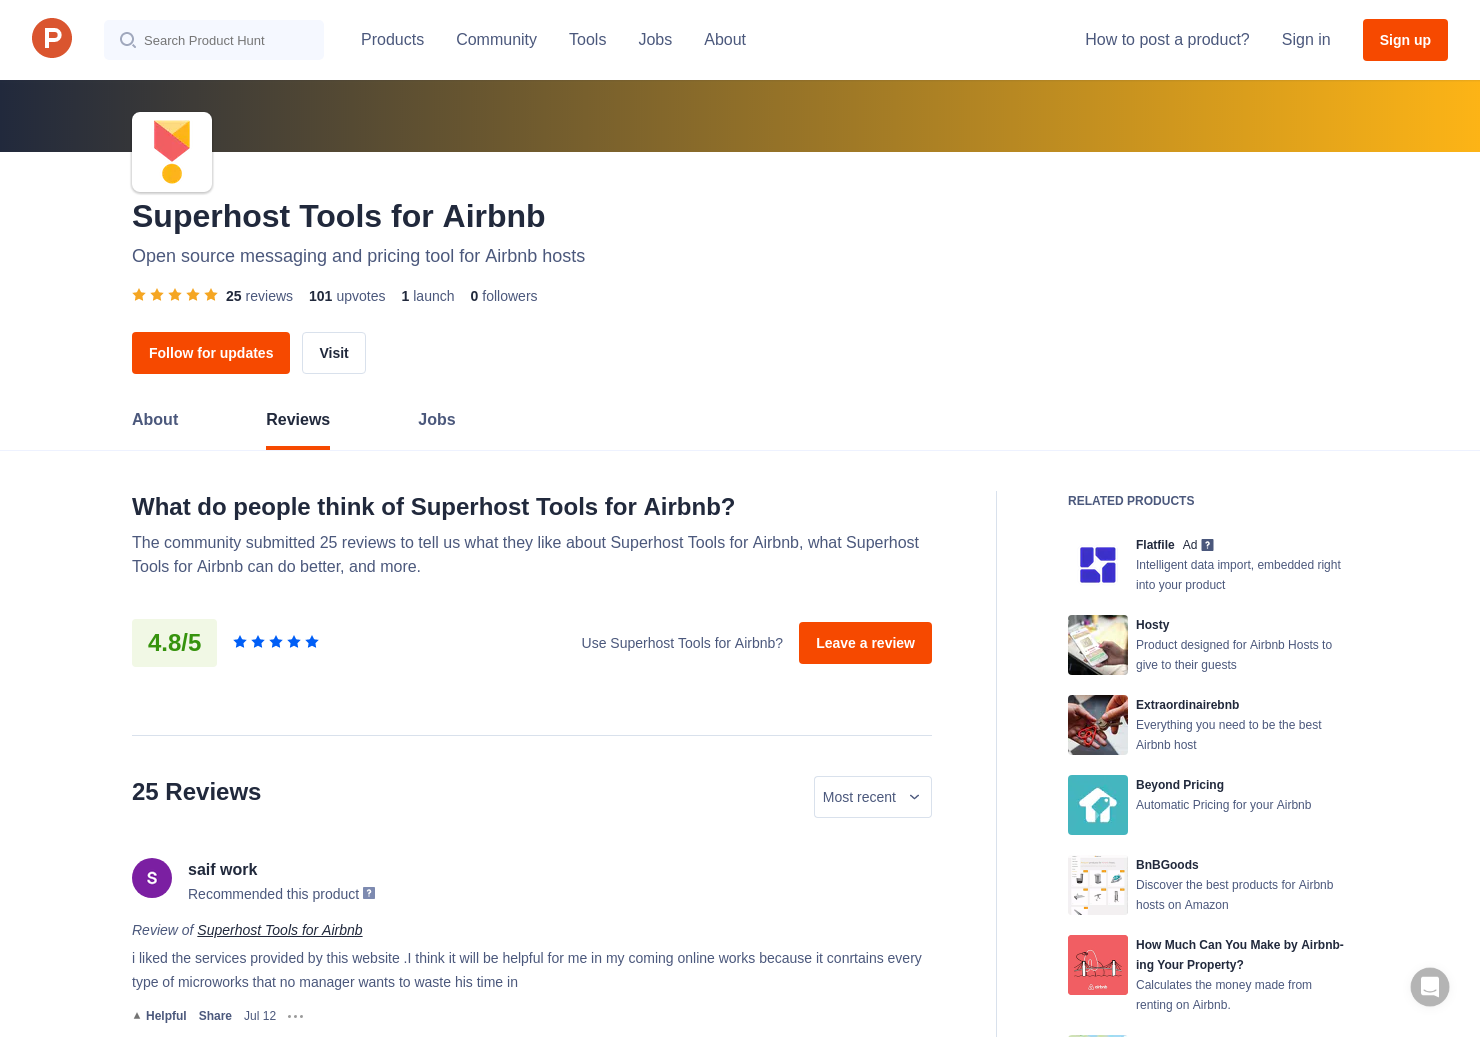 25 Superhost Tools for Airbnb Reviews - Pros, Cons and